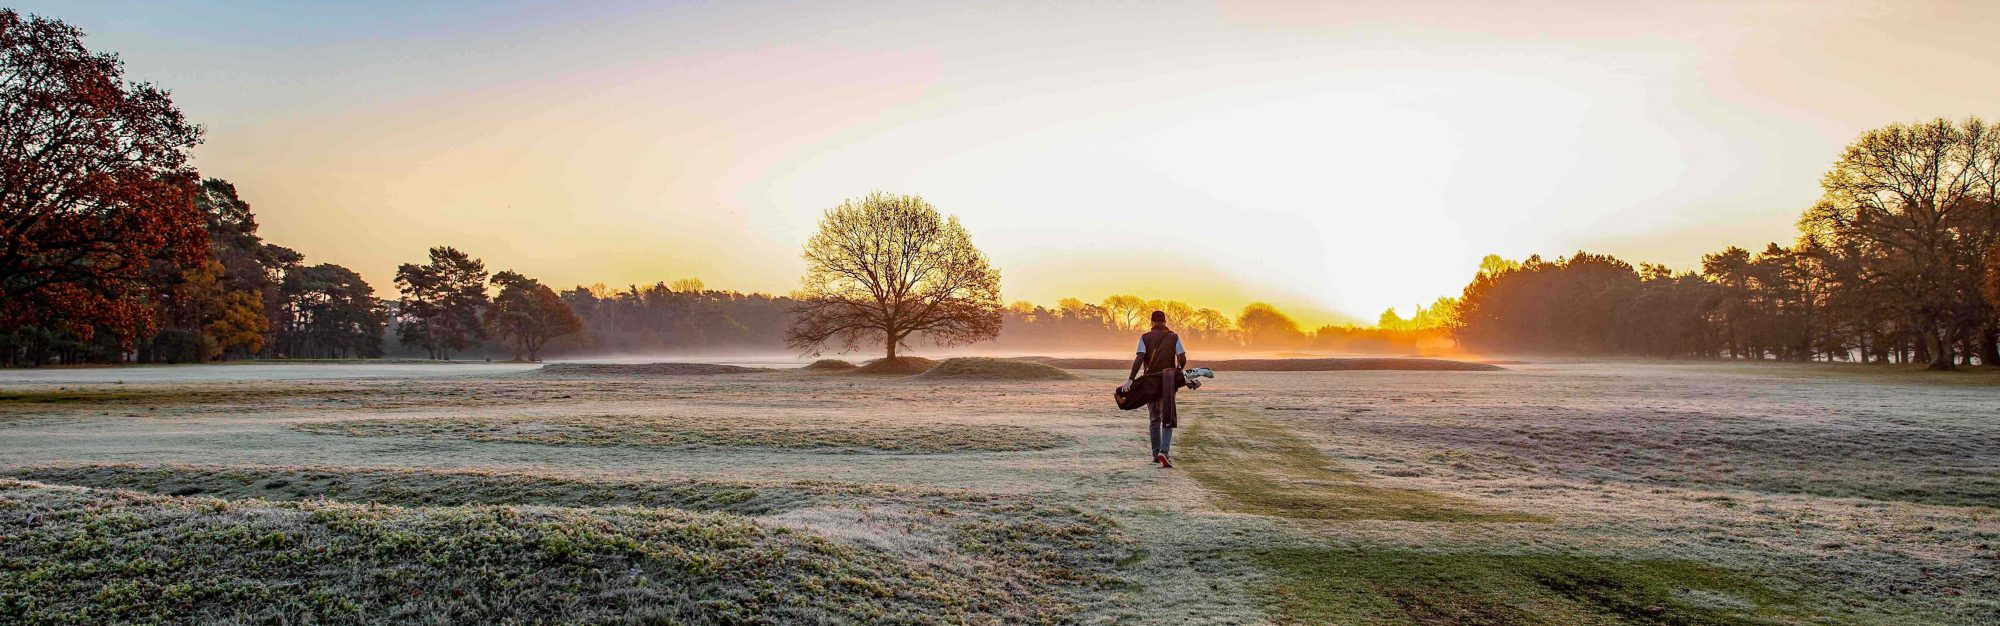 'Life's too short to play bad golf'